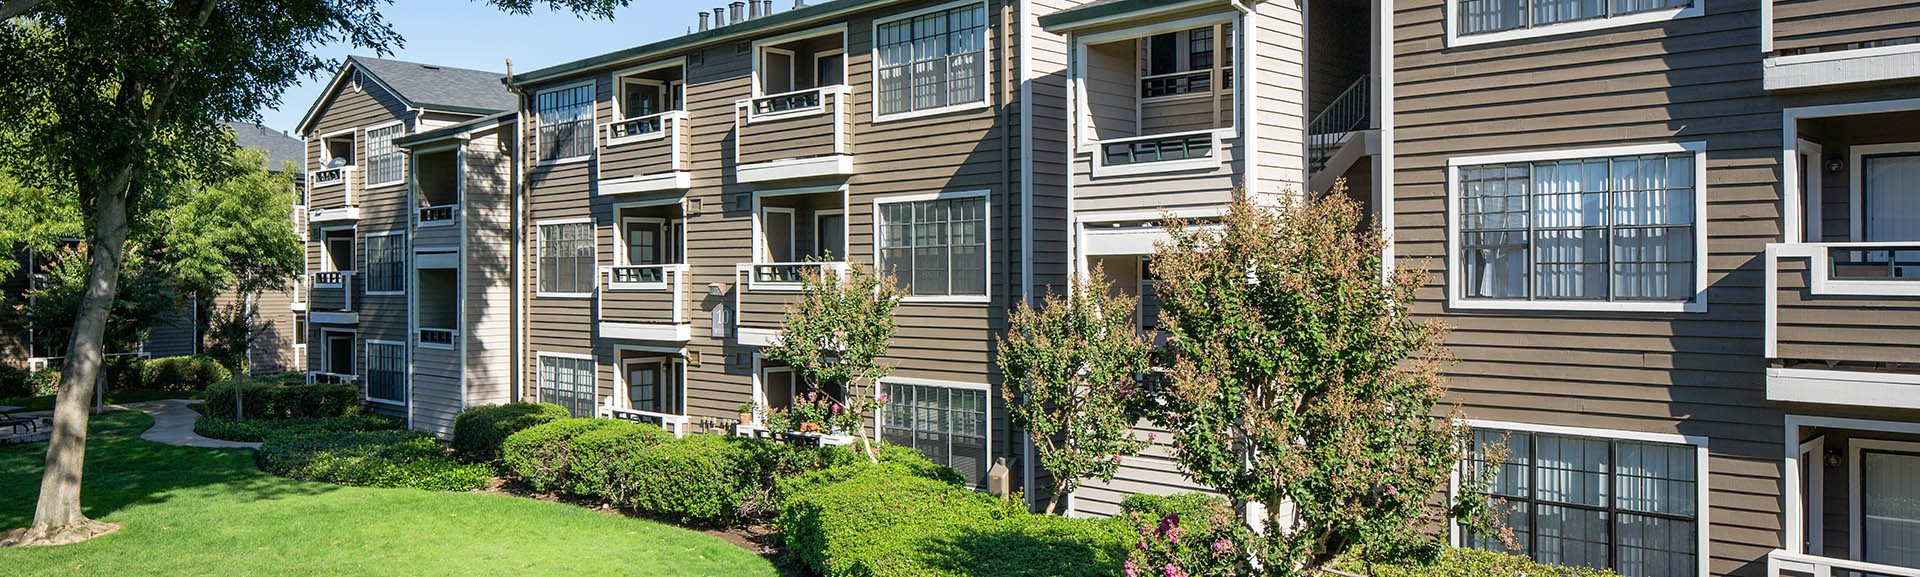 Learn about our neighborhood at Reserve at Capital Center Apartment Homes in Rancho Cordova, CA on our website